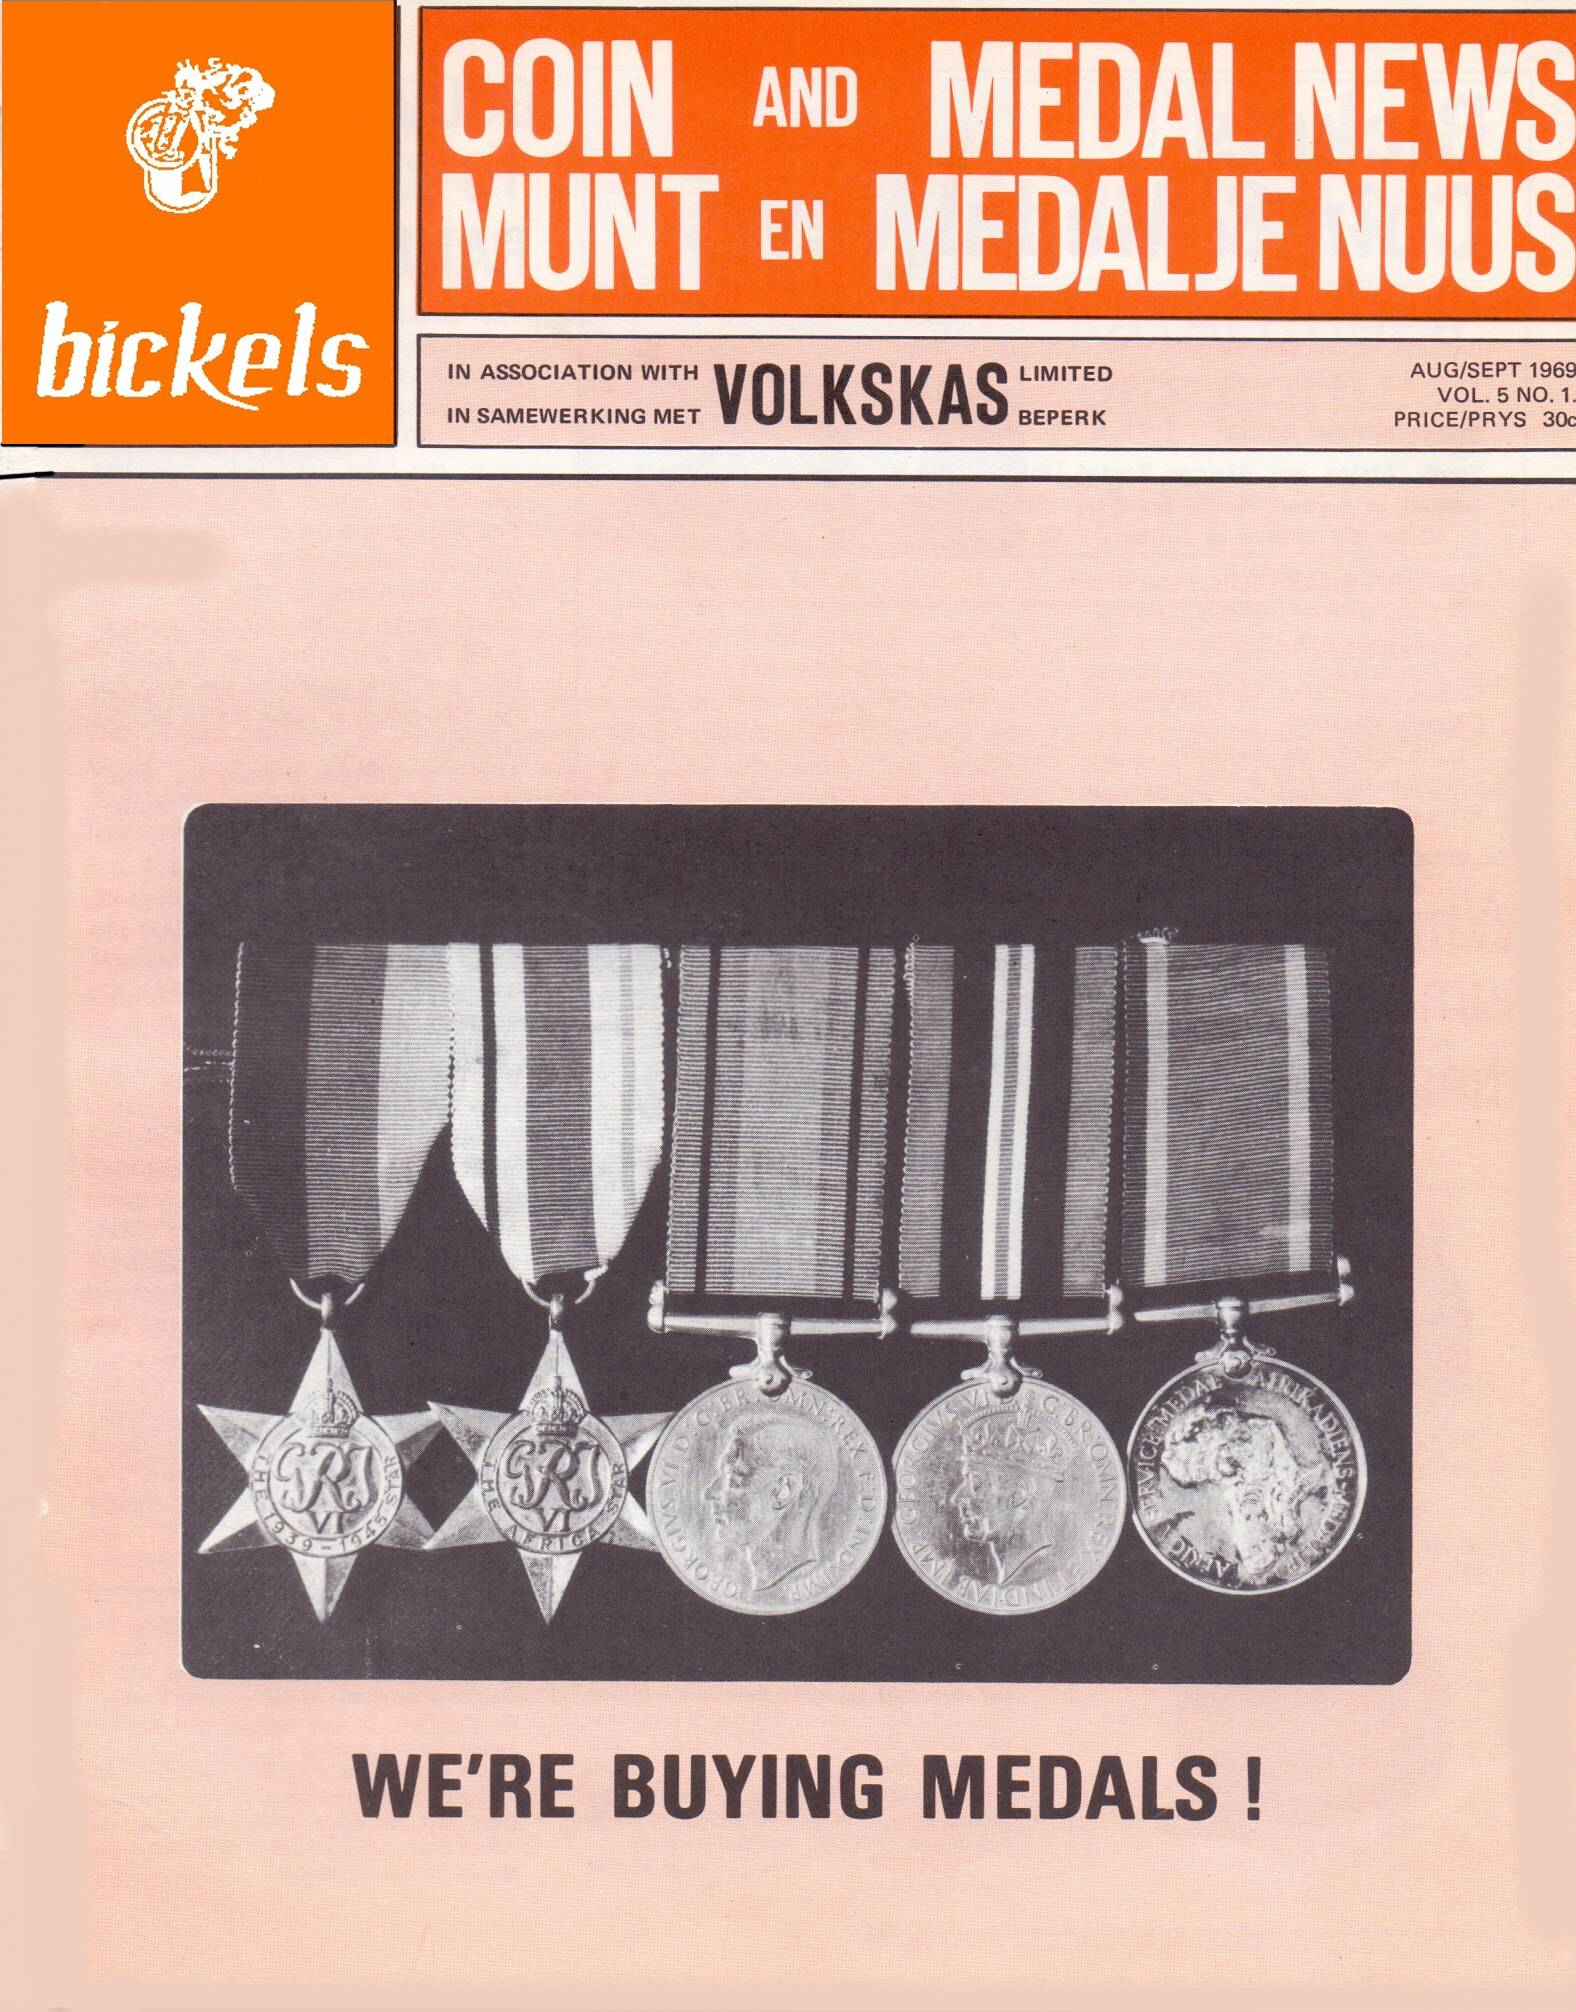 Bickels Coin & Medal News August September 1969 Vol 5 No 1